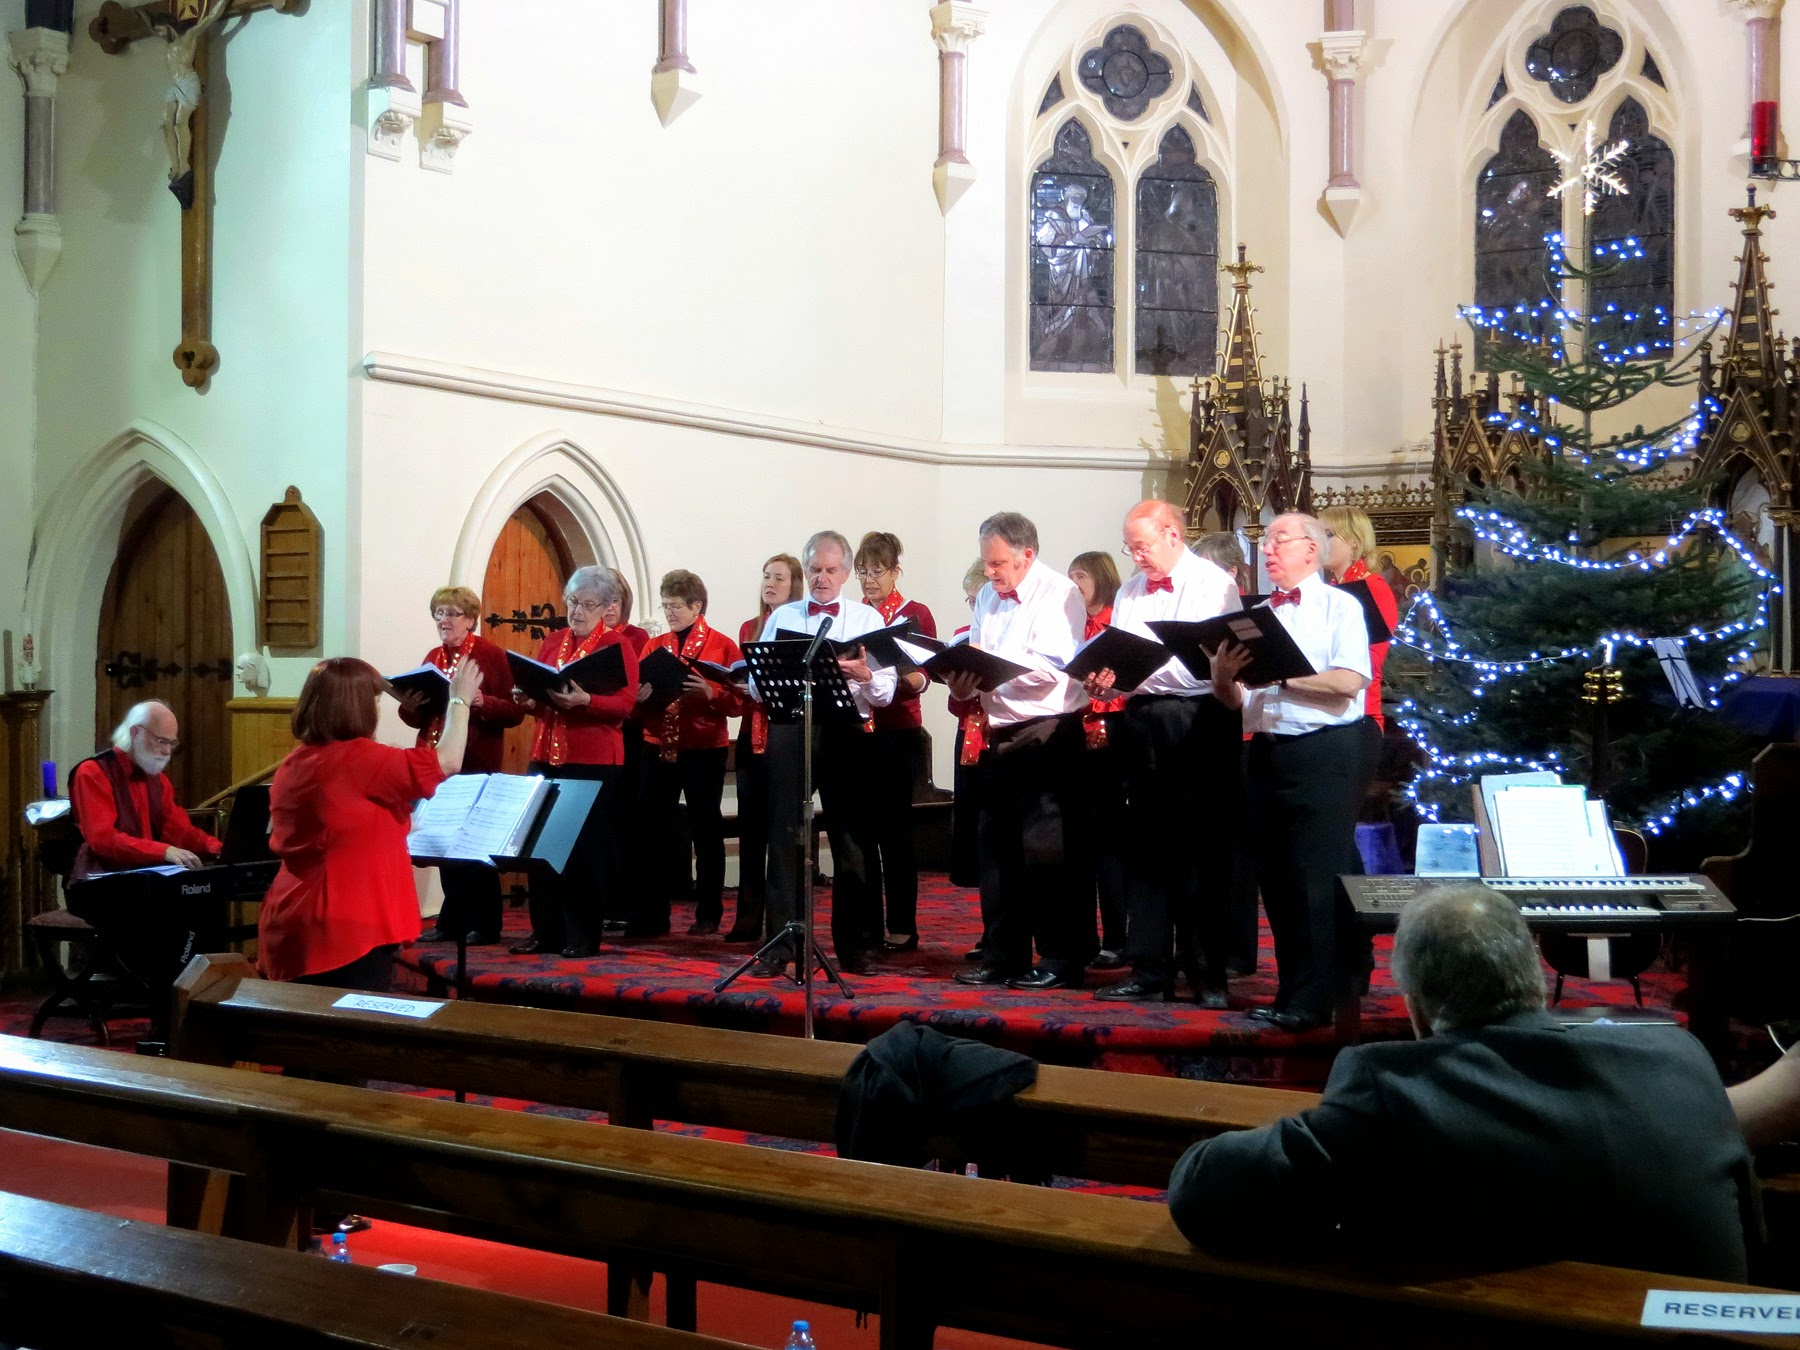 Photo: The Choir also performed Coventry Carol, What Child is This?, Stille Nacht, The Twelve Days After Christmas, Mary's Boy Child, Sleigh Ride, Carol of the Bells, Have Yourself a Merry Little Christmas and We Wish You a Merry Christmas.